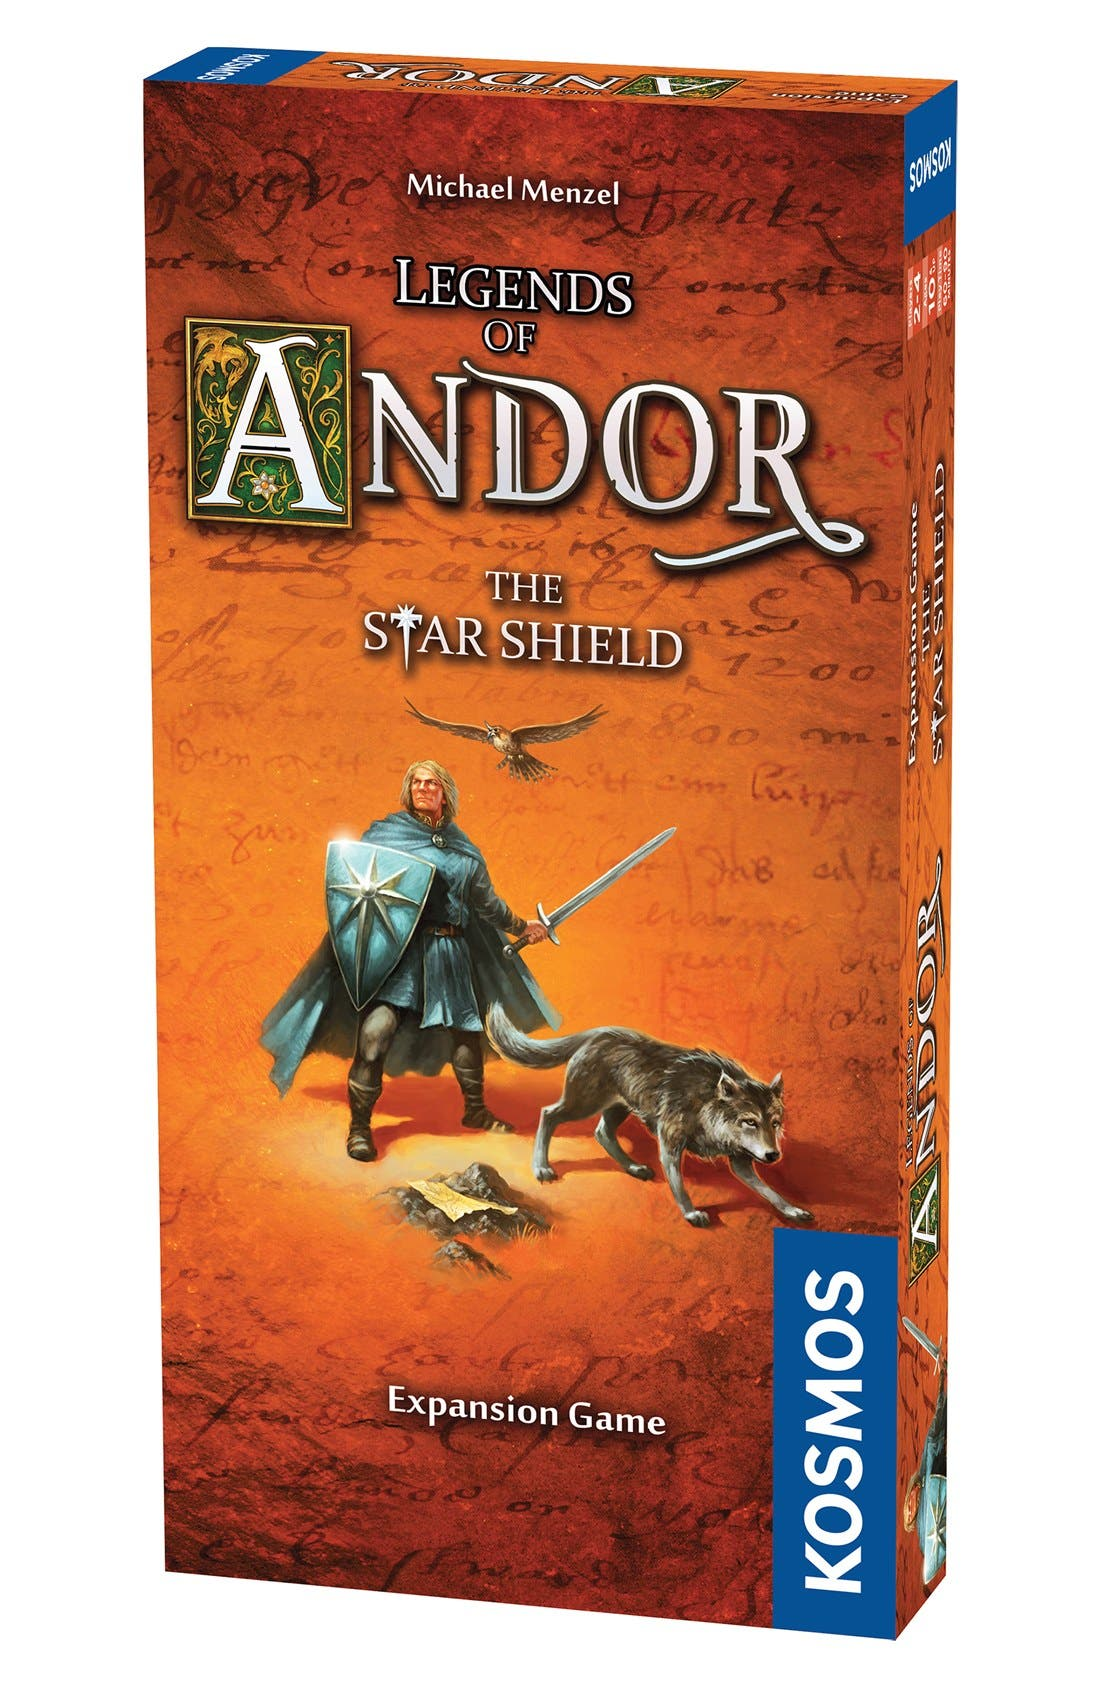 Boys Thames  Kosmos Legends Of Andor  The Star Shield Game Expansion Pack